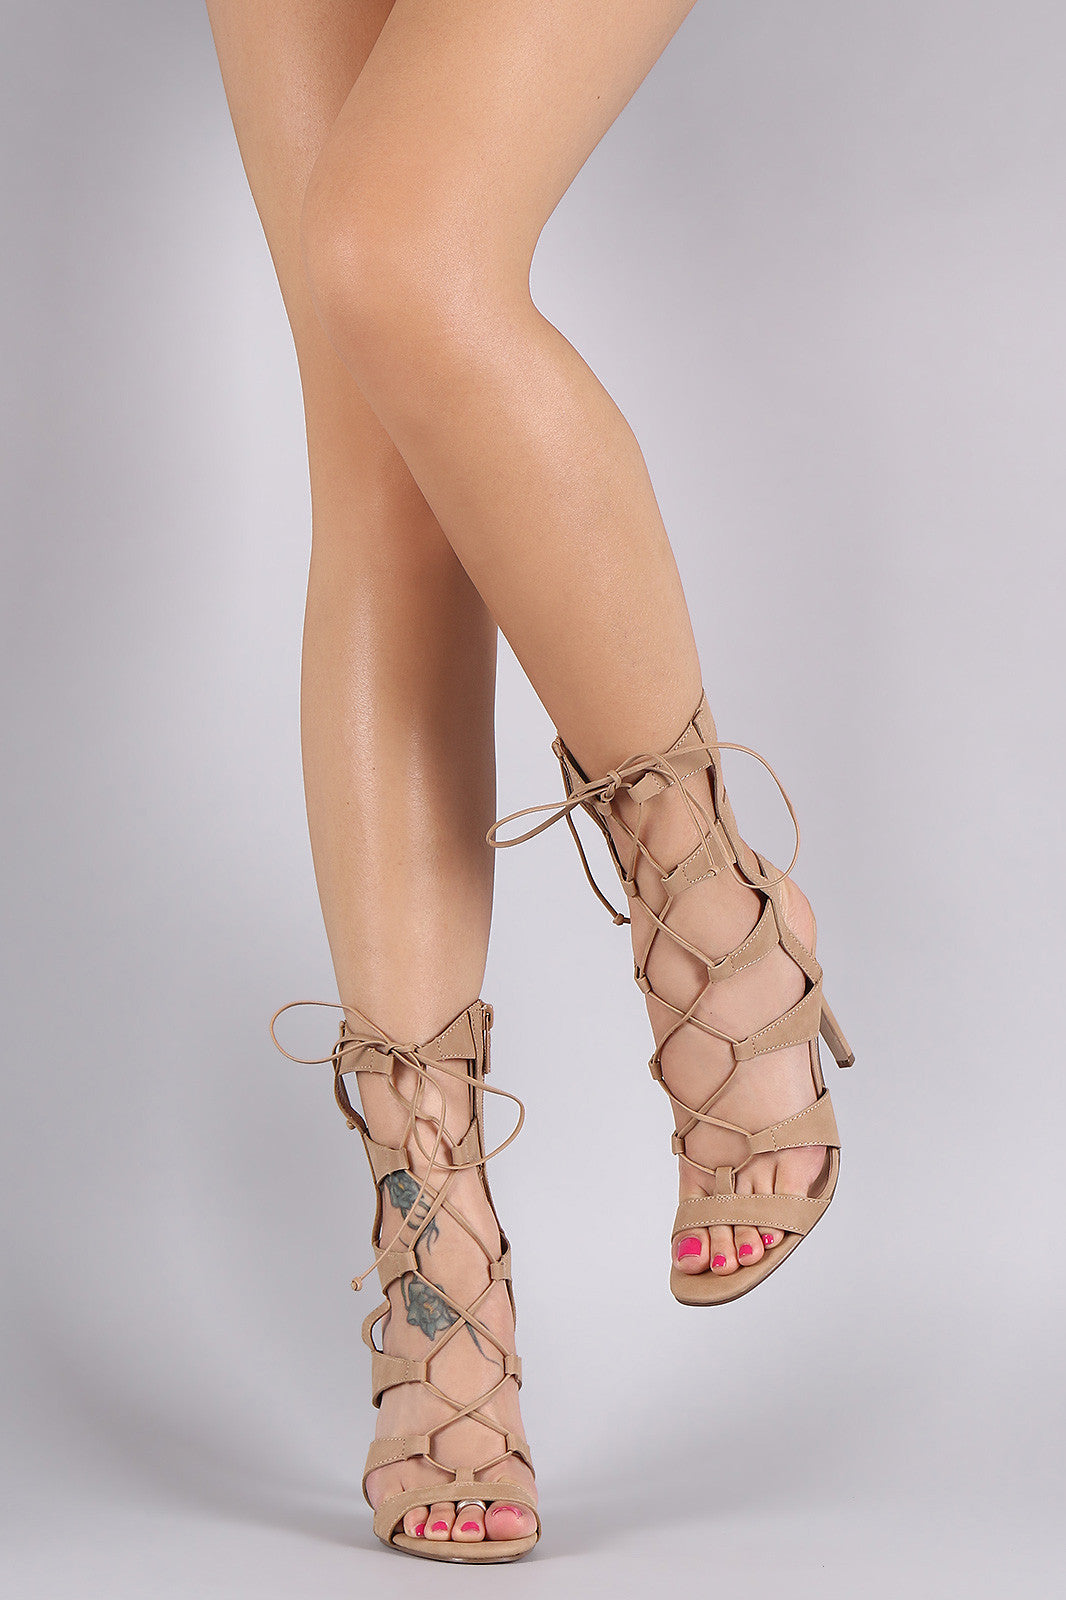 Breckelle Strappy Corset Lace Up Stiletto Heel - Thick 'N' Curvy Shop - 1